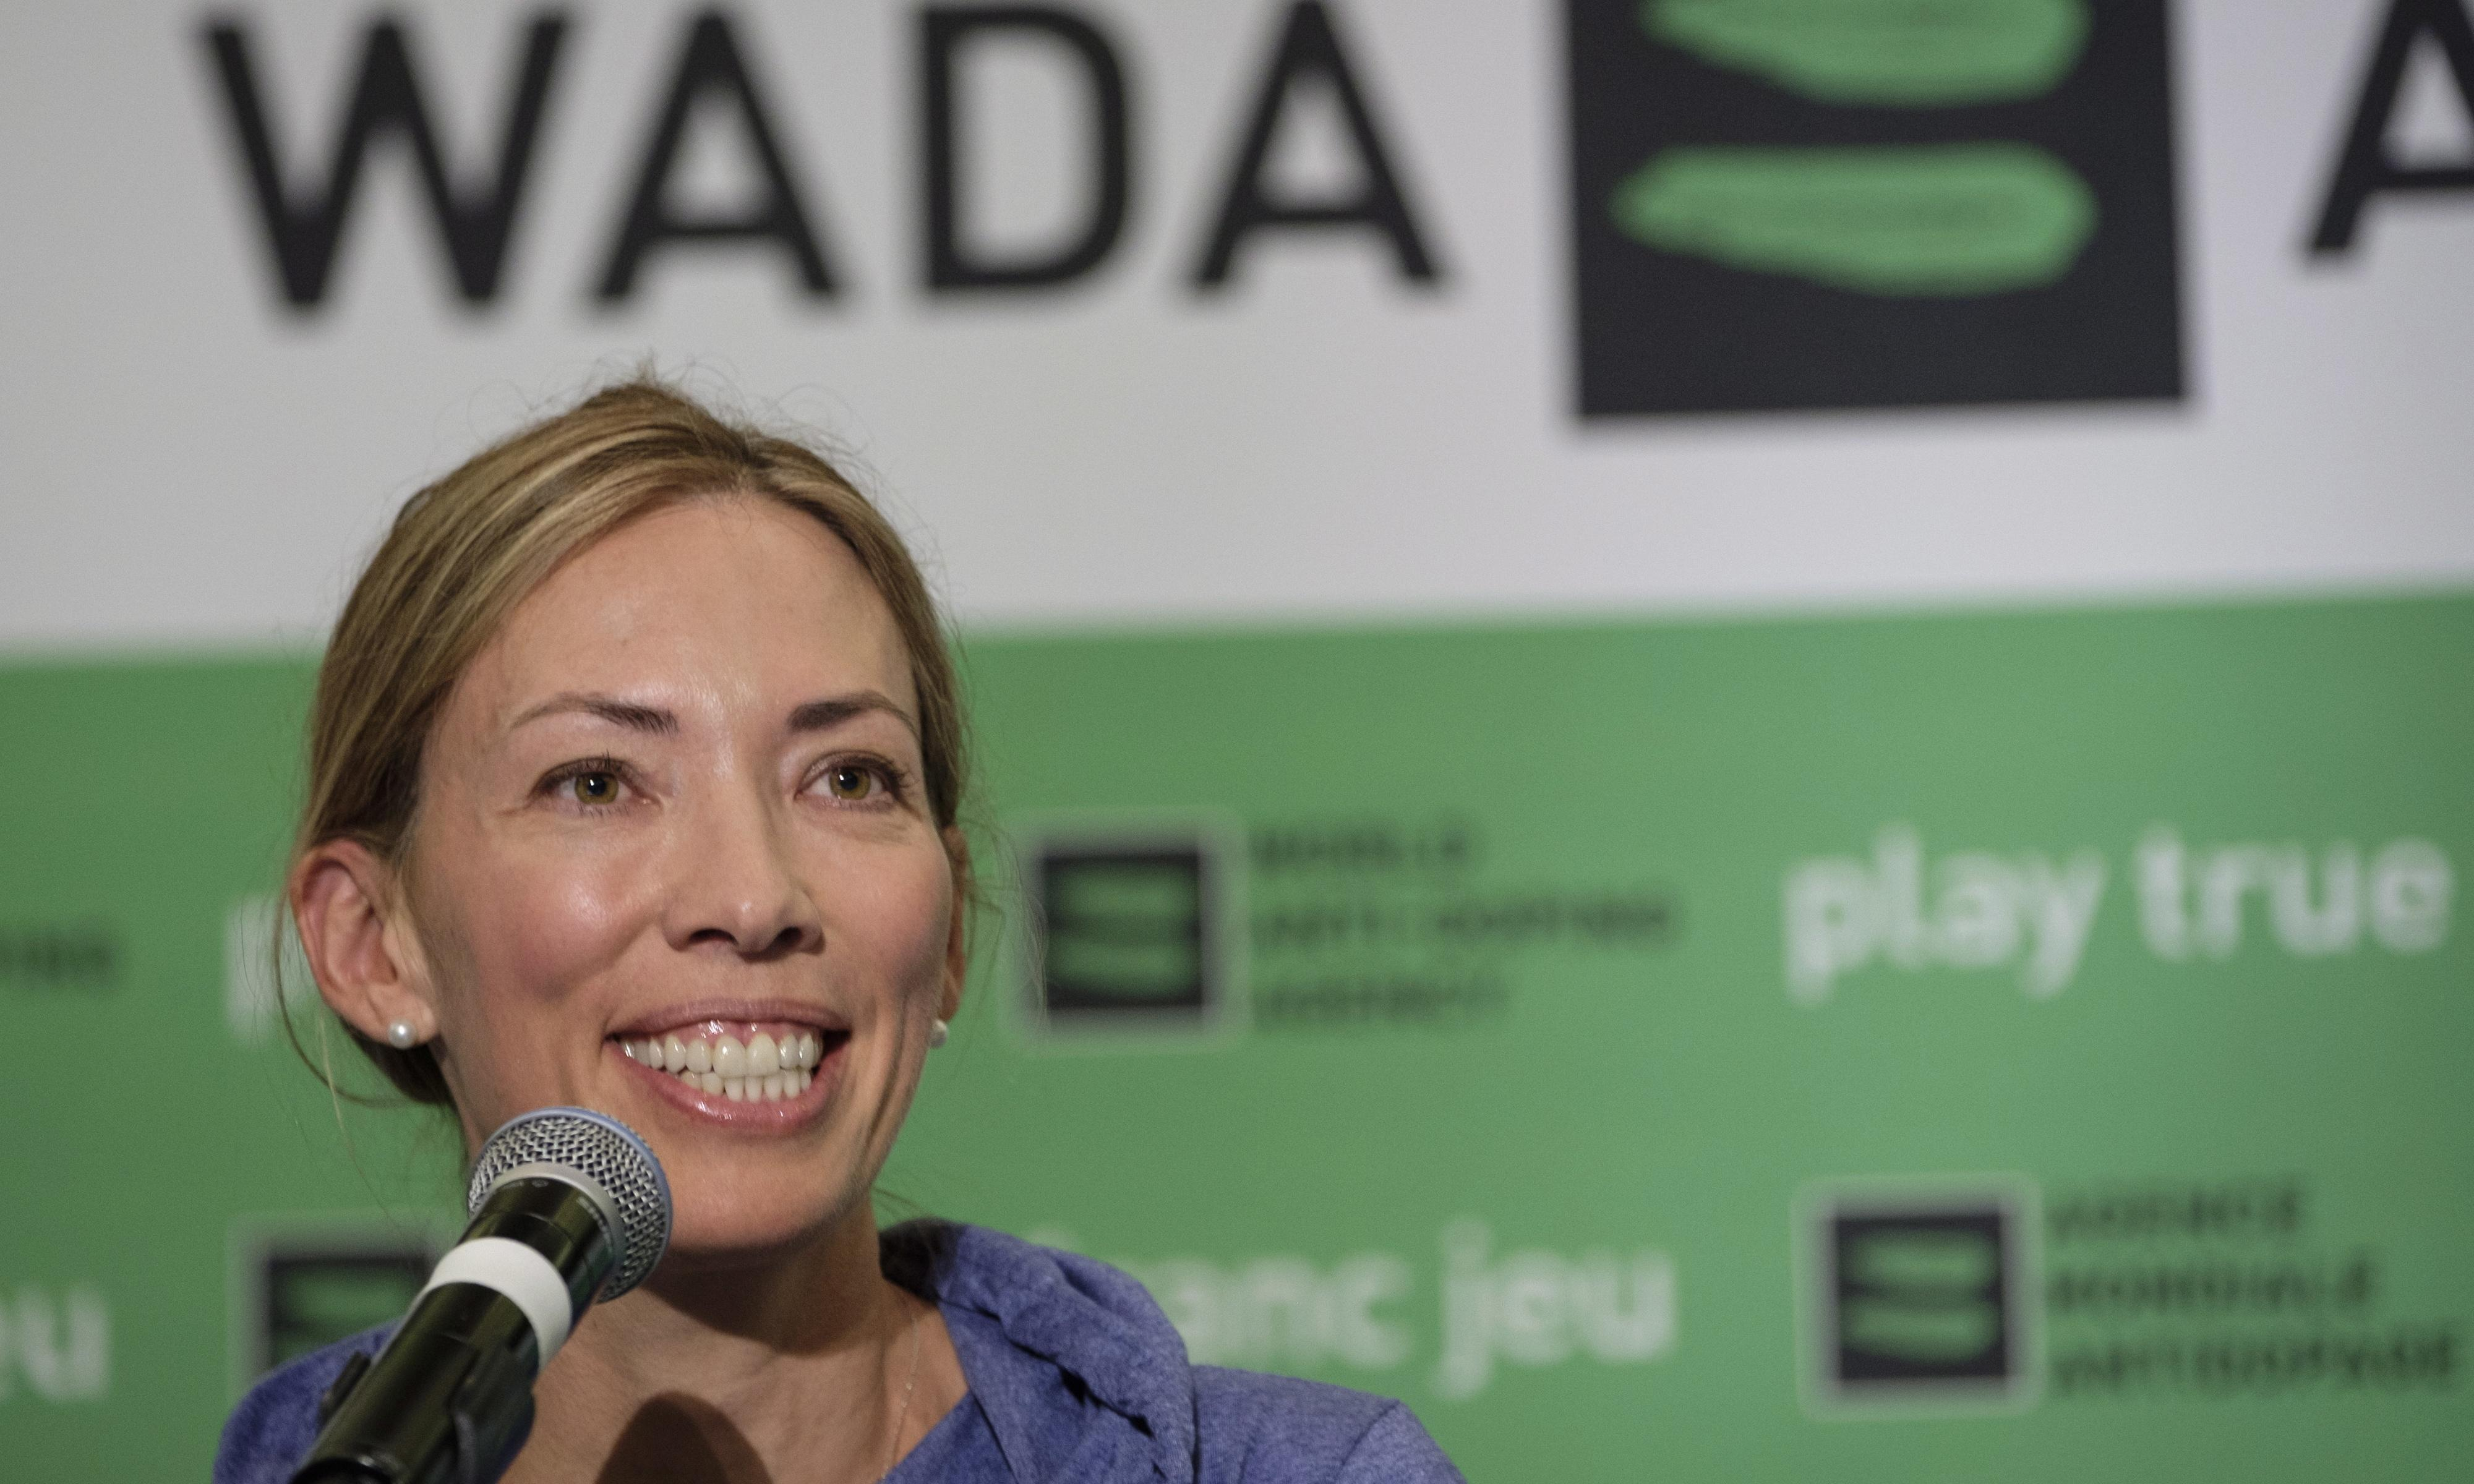 Athletes condemn 'spineless' Wada as Putin considers appeal